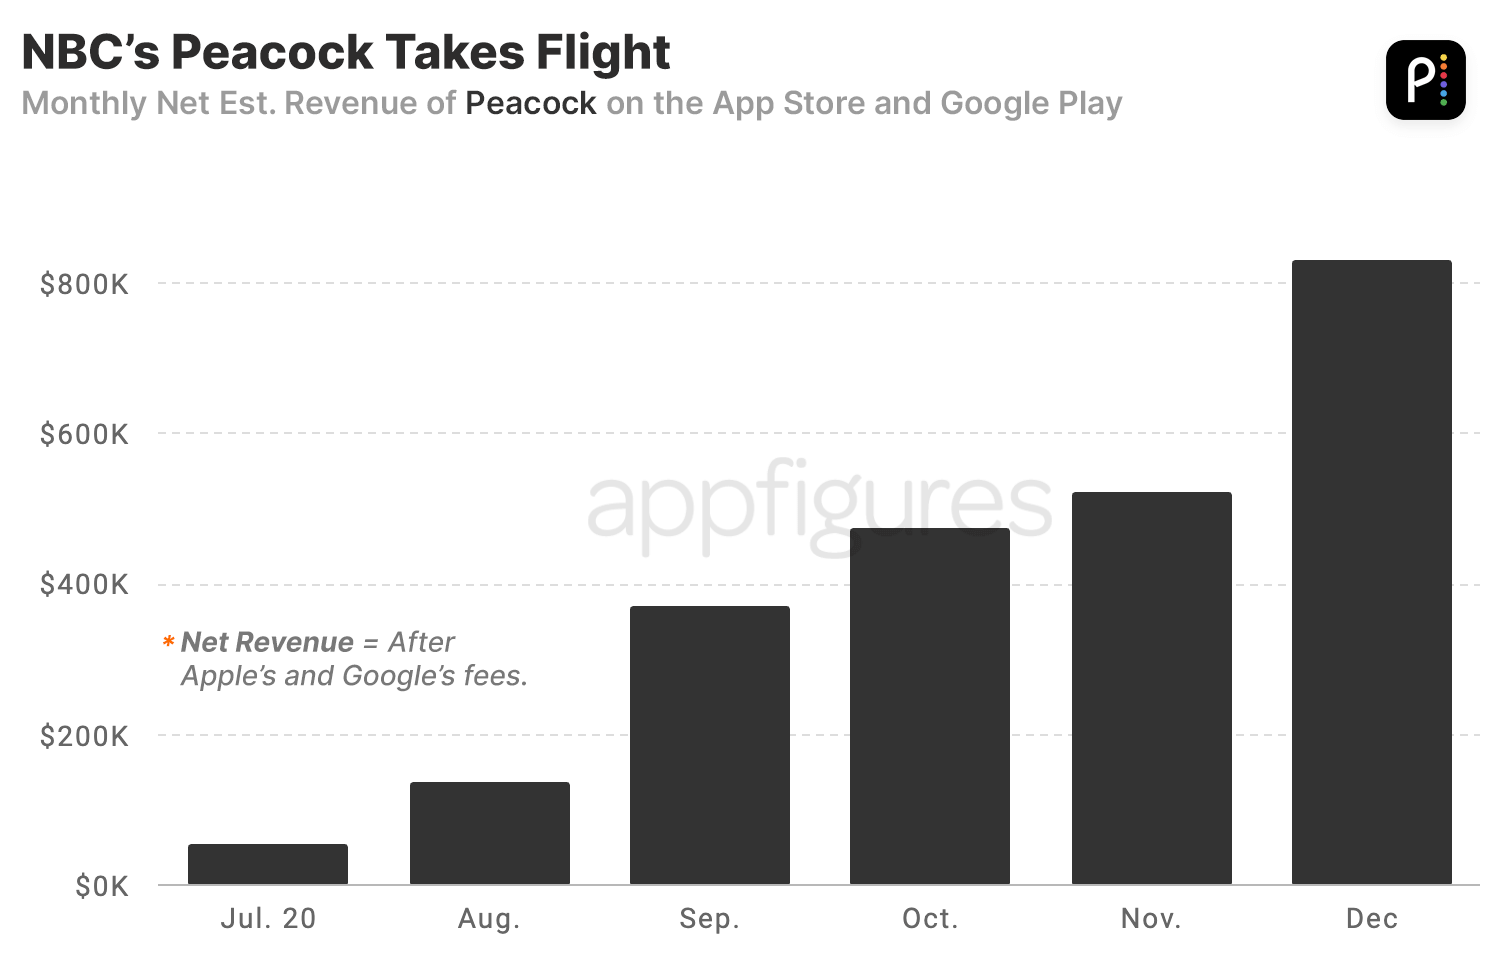 Estimated revenue of Peacock in the App Store and Google Play